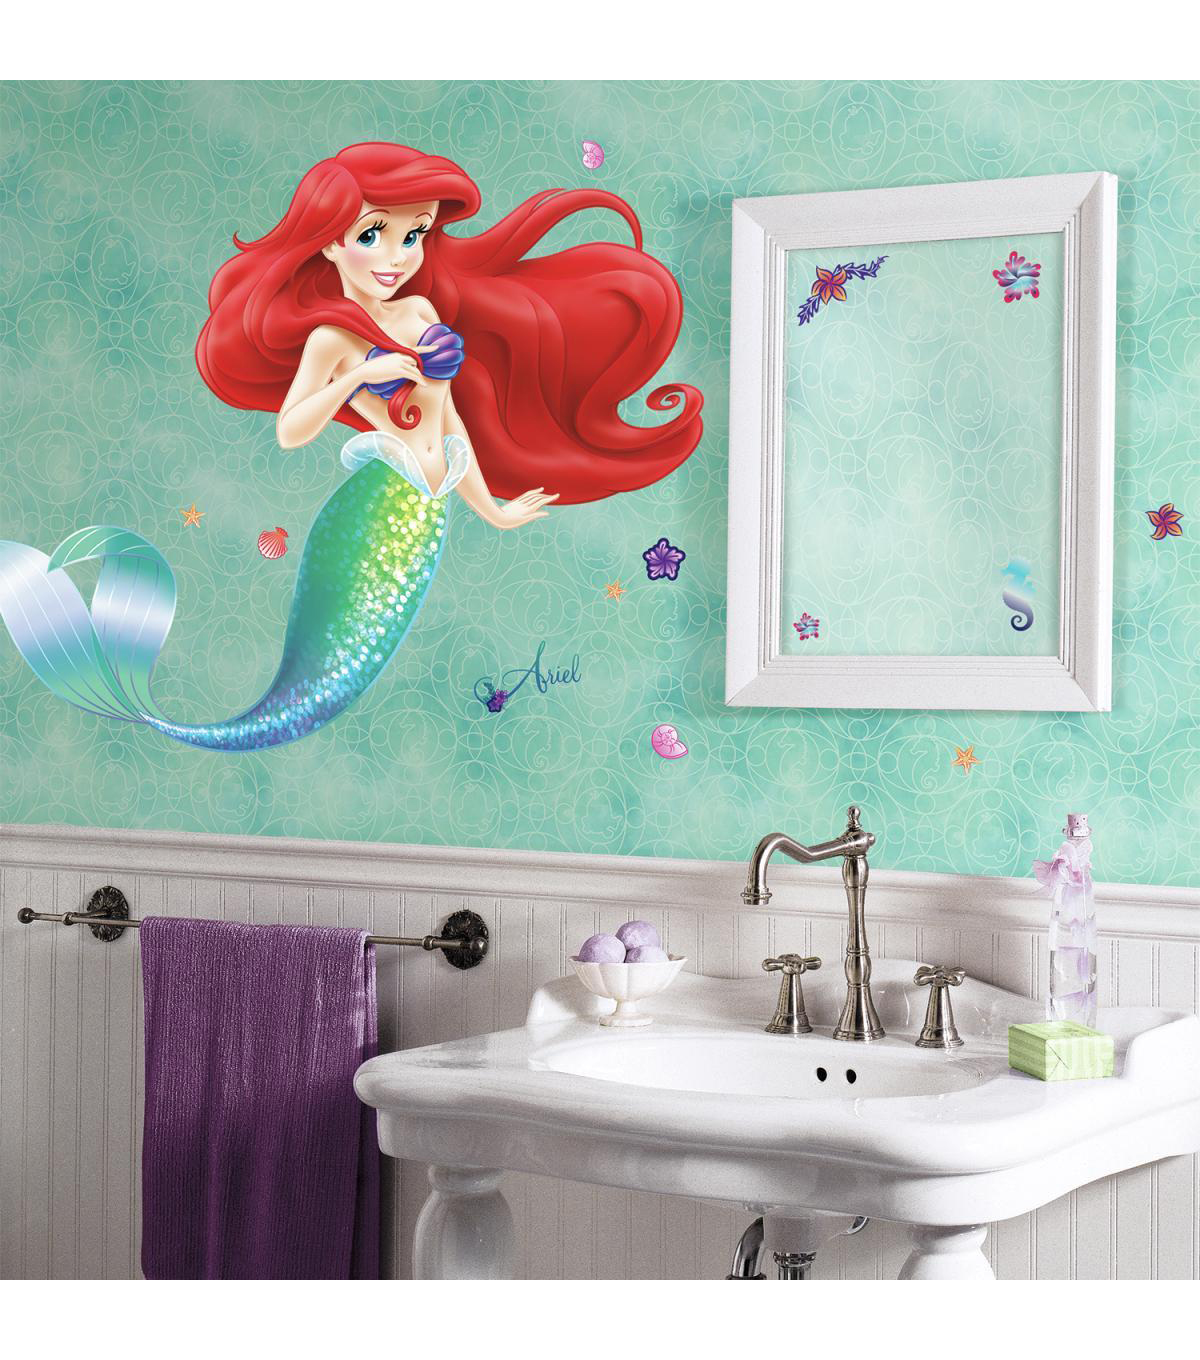 York Wallcoverings Peel & Stick Wall Decals-The Little Mermaid